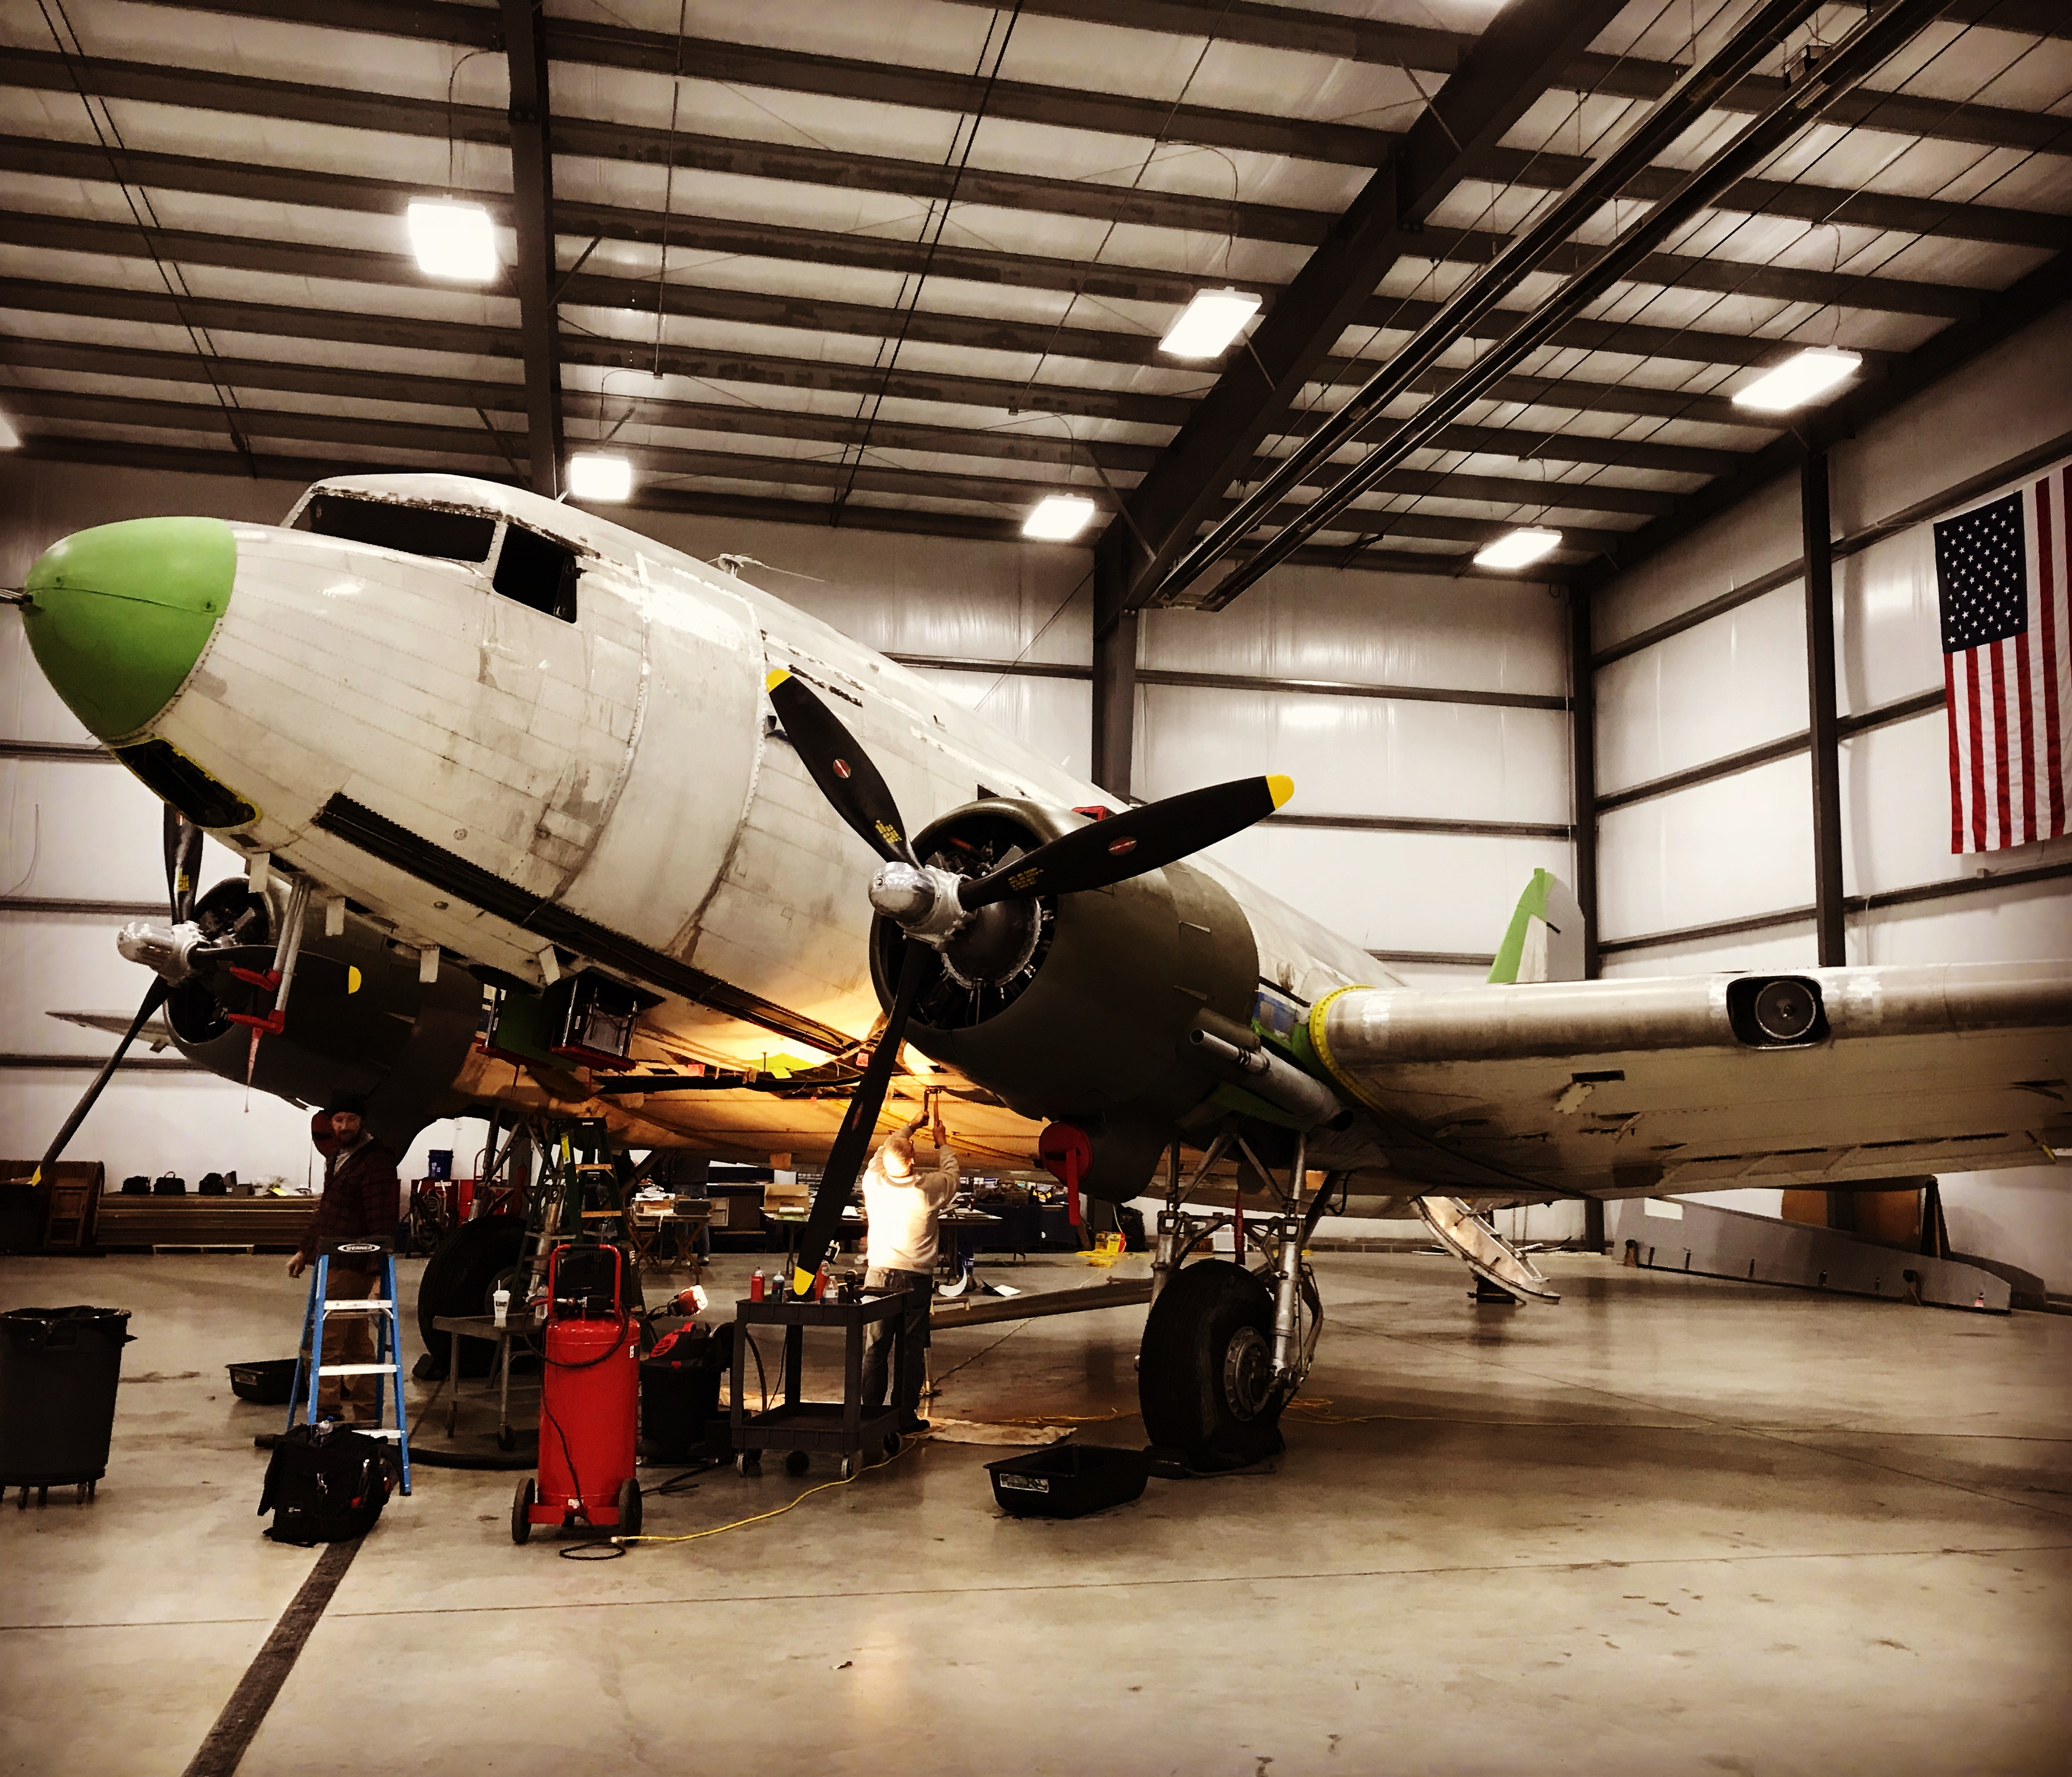 Beach City Baby High Flight Academy How A Propeller Works Aviation And Engineering Fabio Ruberto On The Restoration Of Douglas C 53